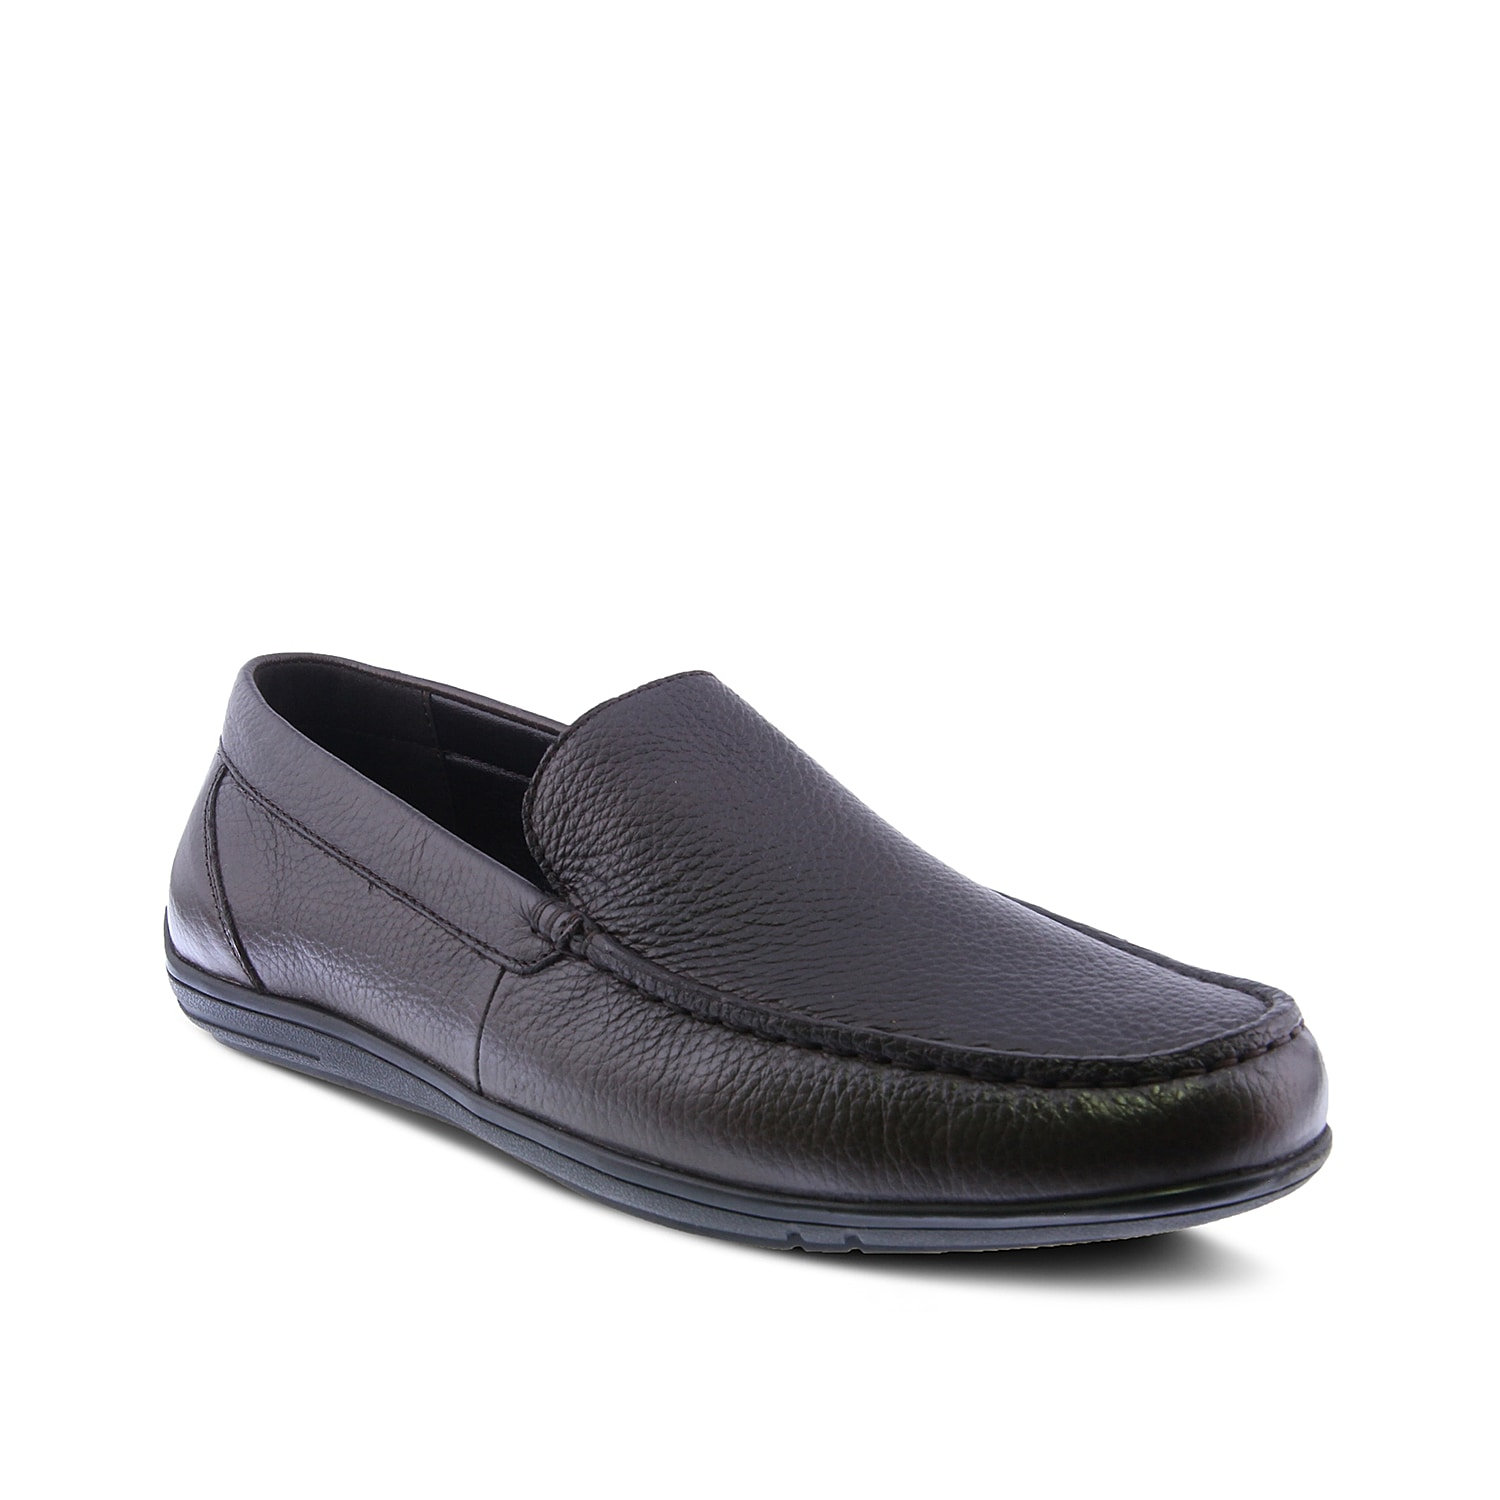 Slip into the Ceto loafer from Spring Step for casual sophistication. This driving moccasin features a leather lining for added comfort.